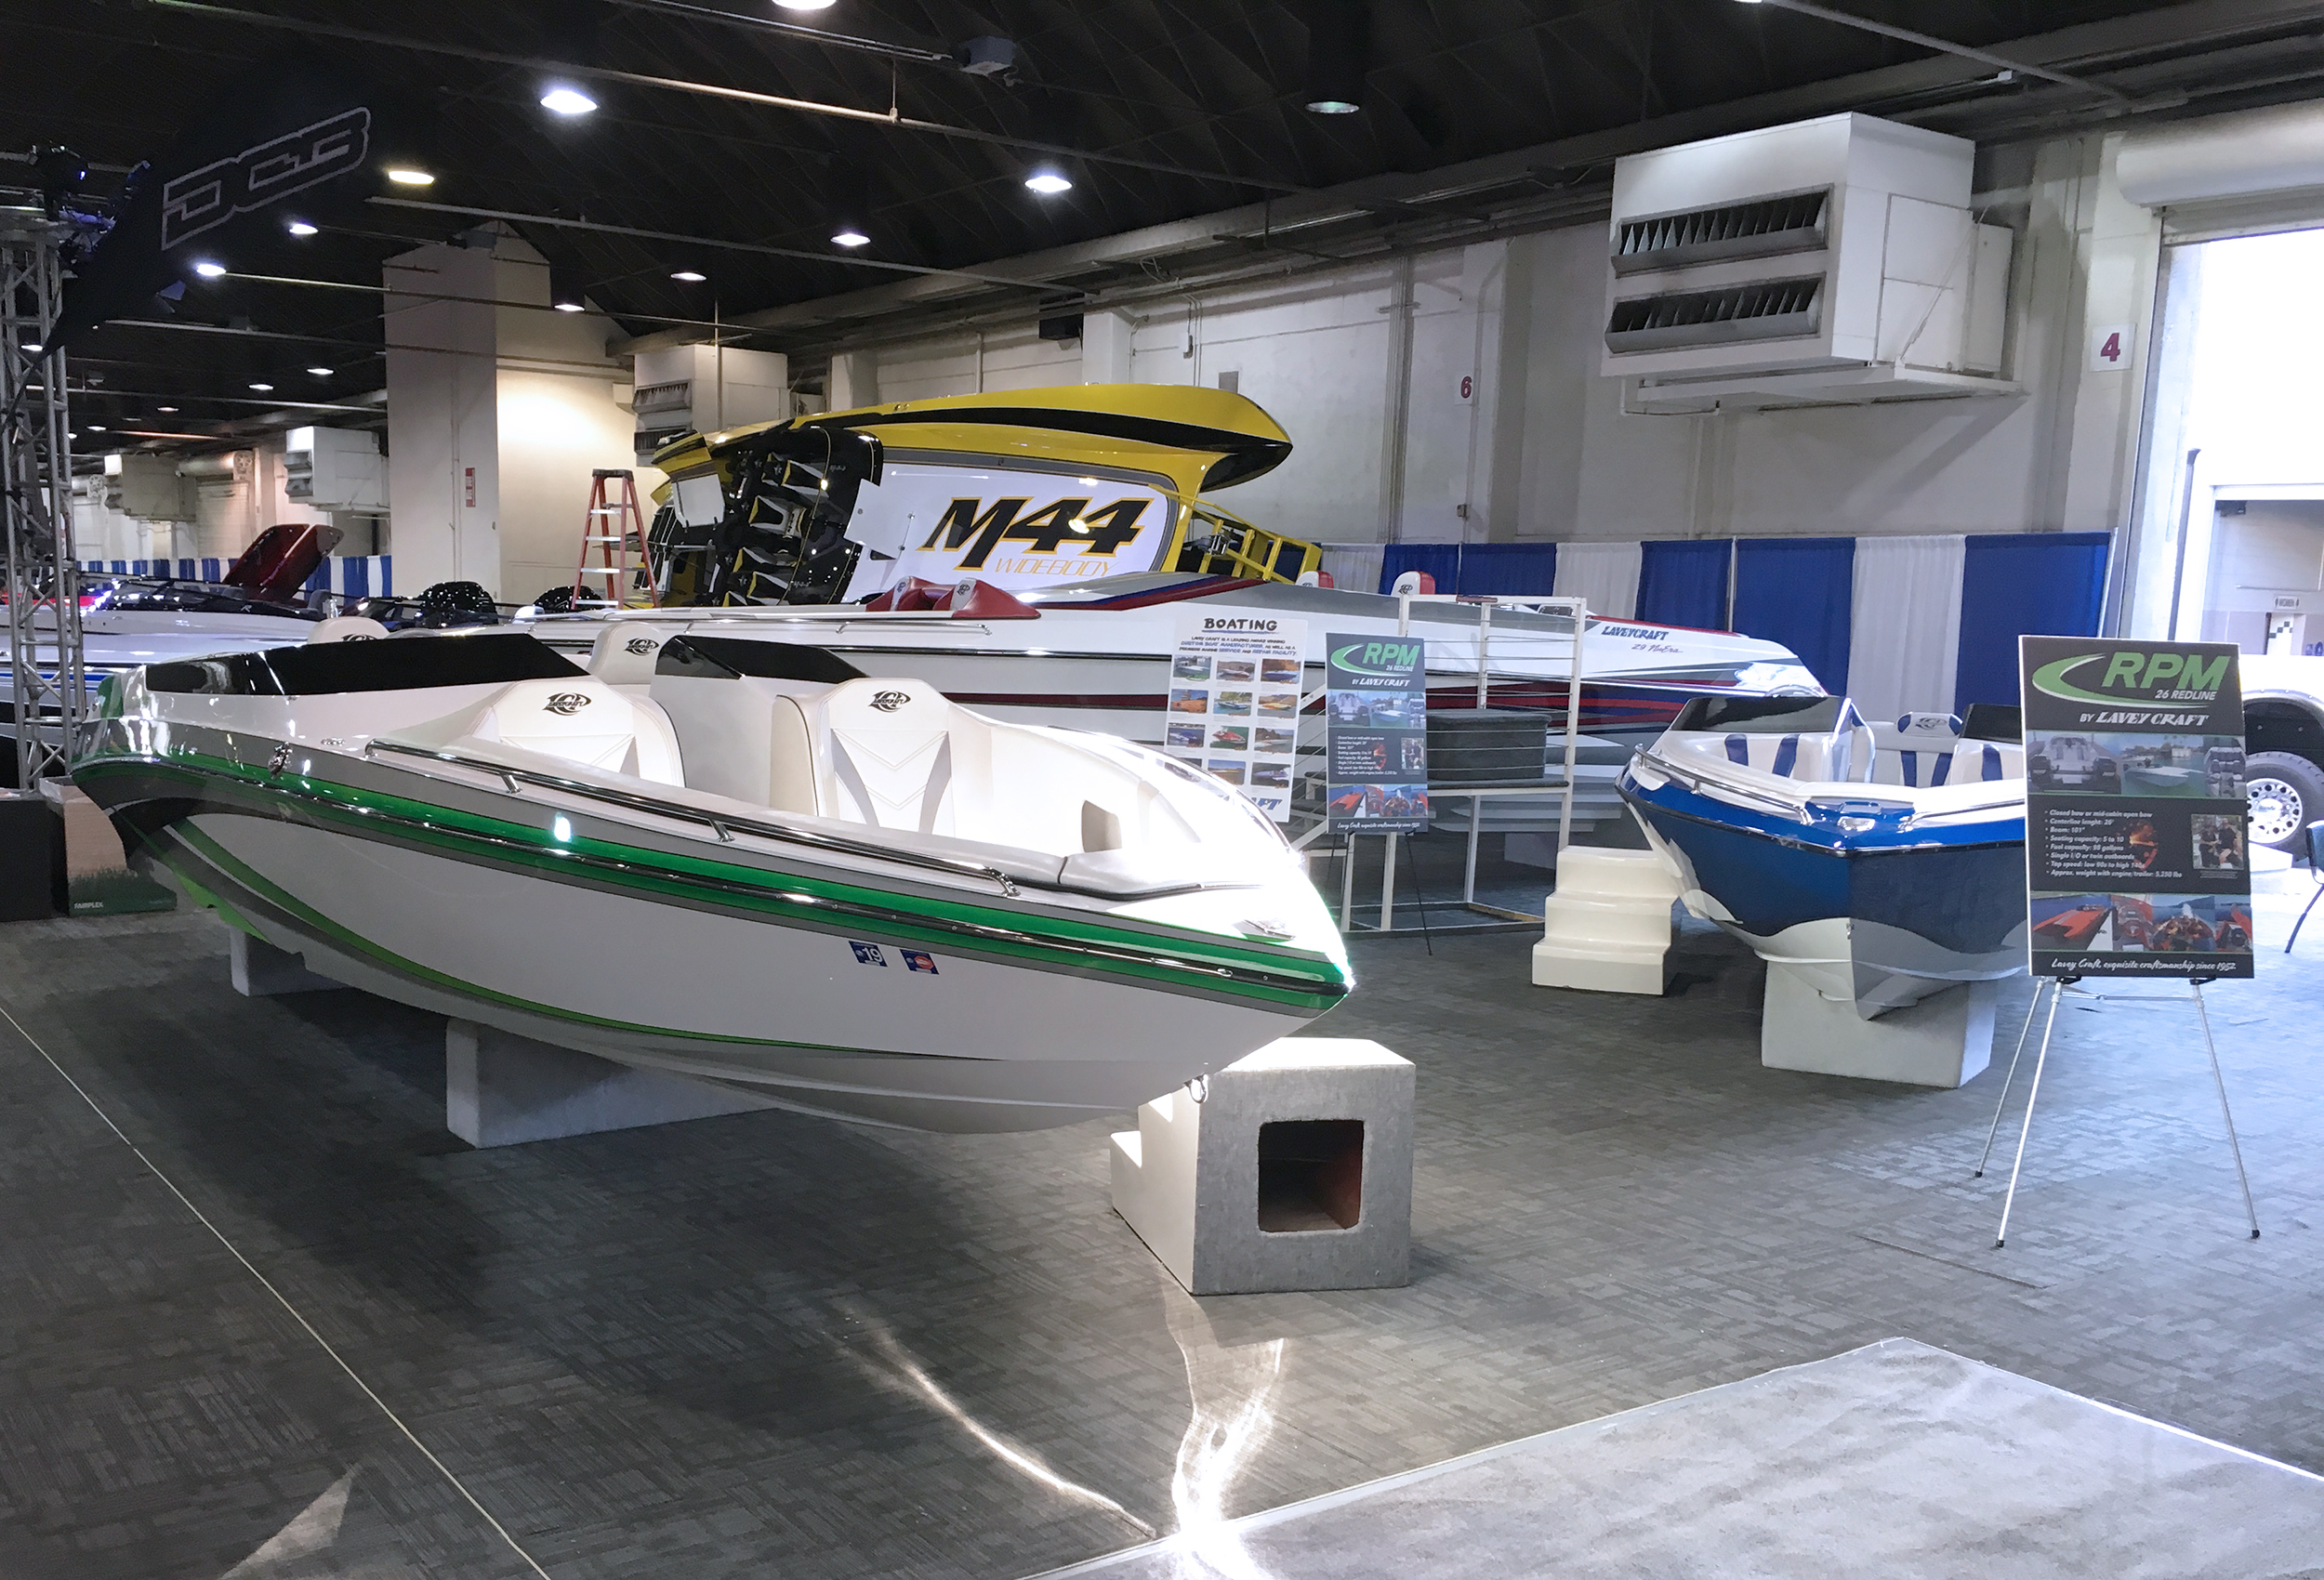 LA Boat Show 2019 - Lavey Craft booth - pic 3.jpg